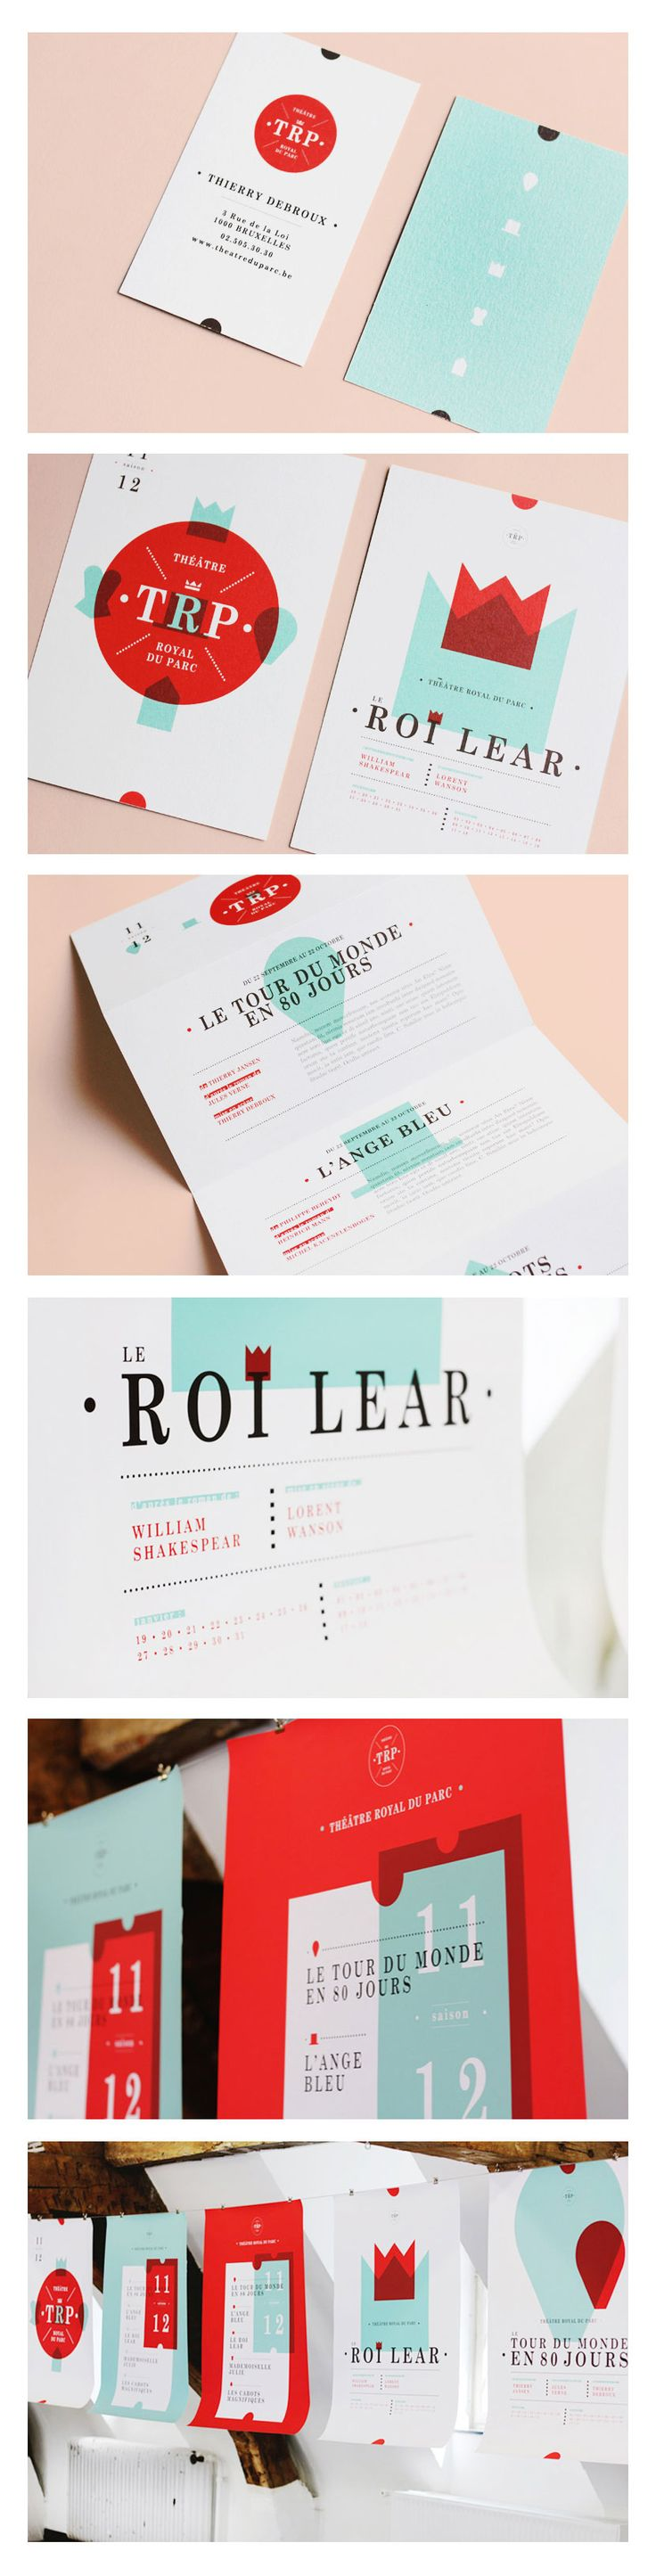 Visual Identity For Royal Park Theatre In Brussels by Noémie Cedille, Graphic Design, Typography, Design, Branding, Identity, Designer Mood Board, Seeing Red, Bar Napkin Productions #BarNapkinProductions #DesignerInspiration